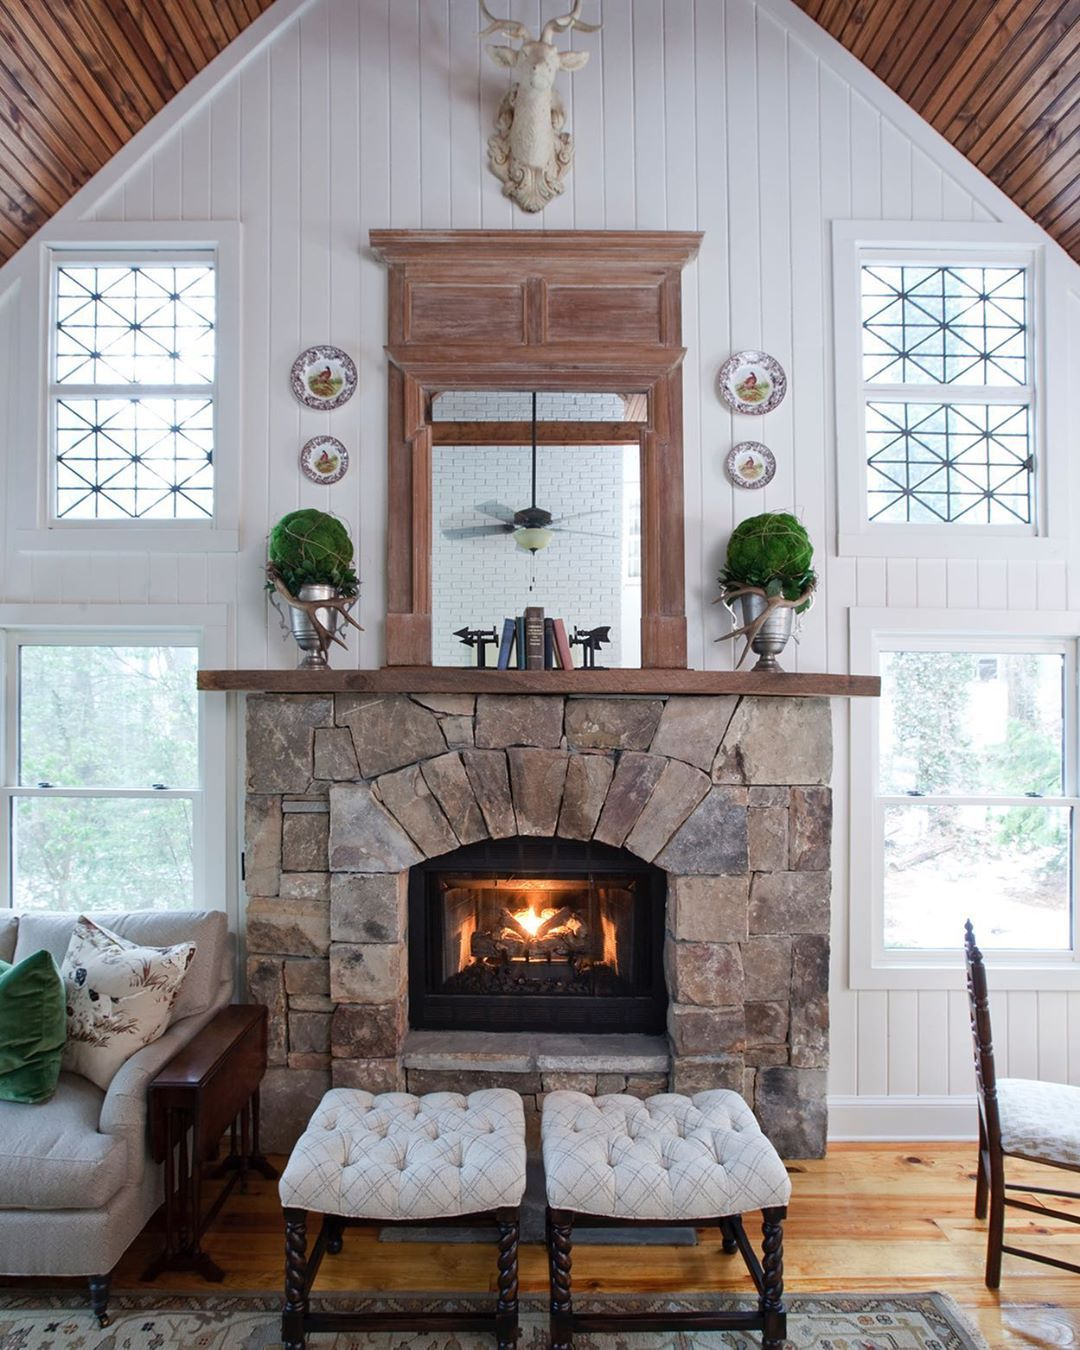 Ericrossinteriors On Instagram This Is The Living Room Of My Favorite Place On Earth Our Former Home In The Western North Carolina Mou French Cottage Country Style Homes Family Room